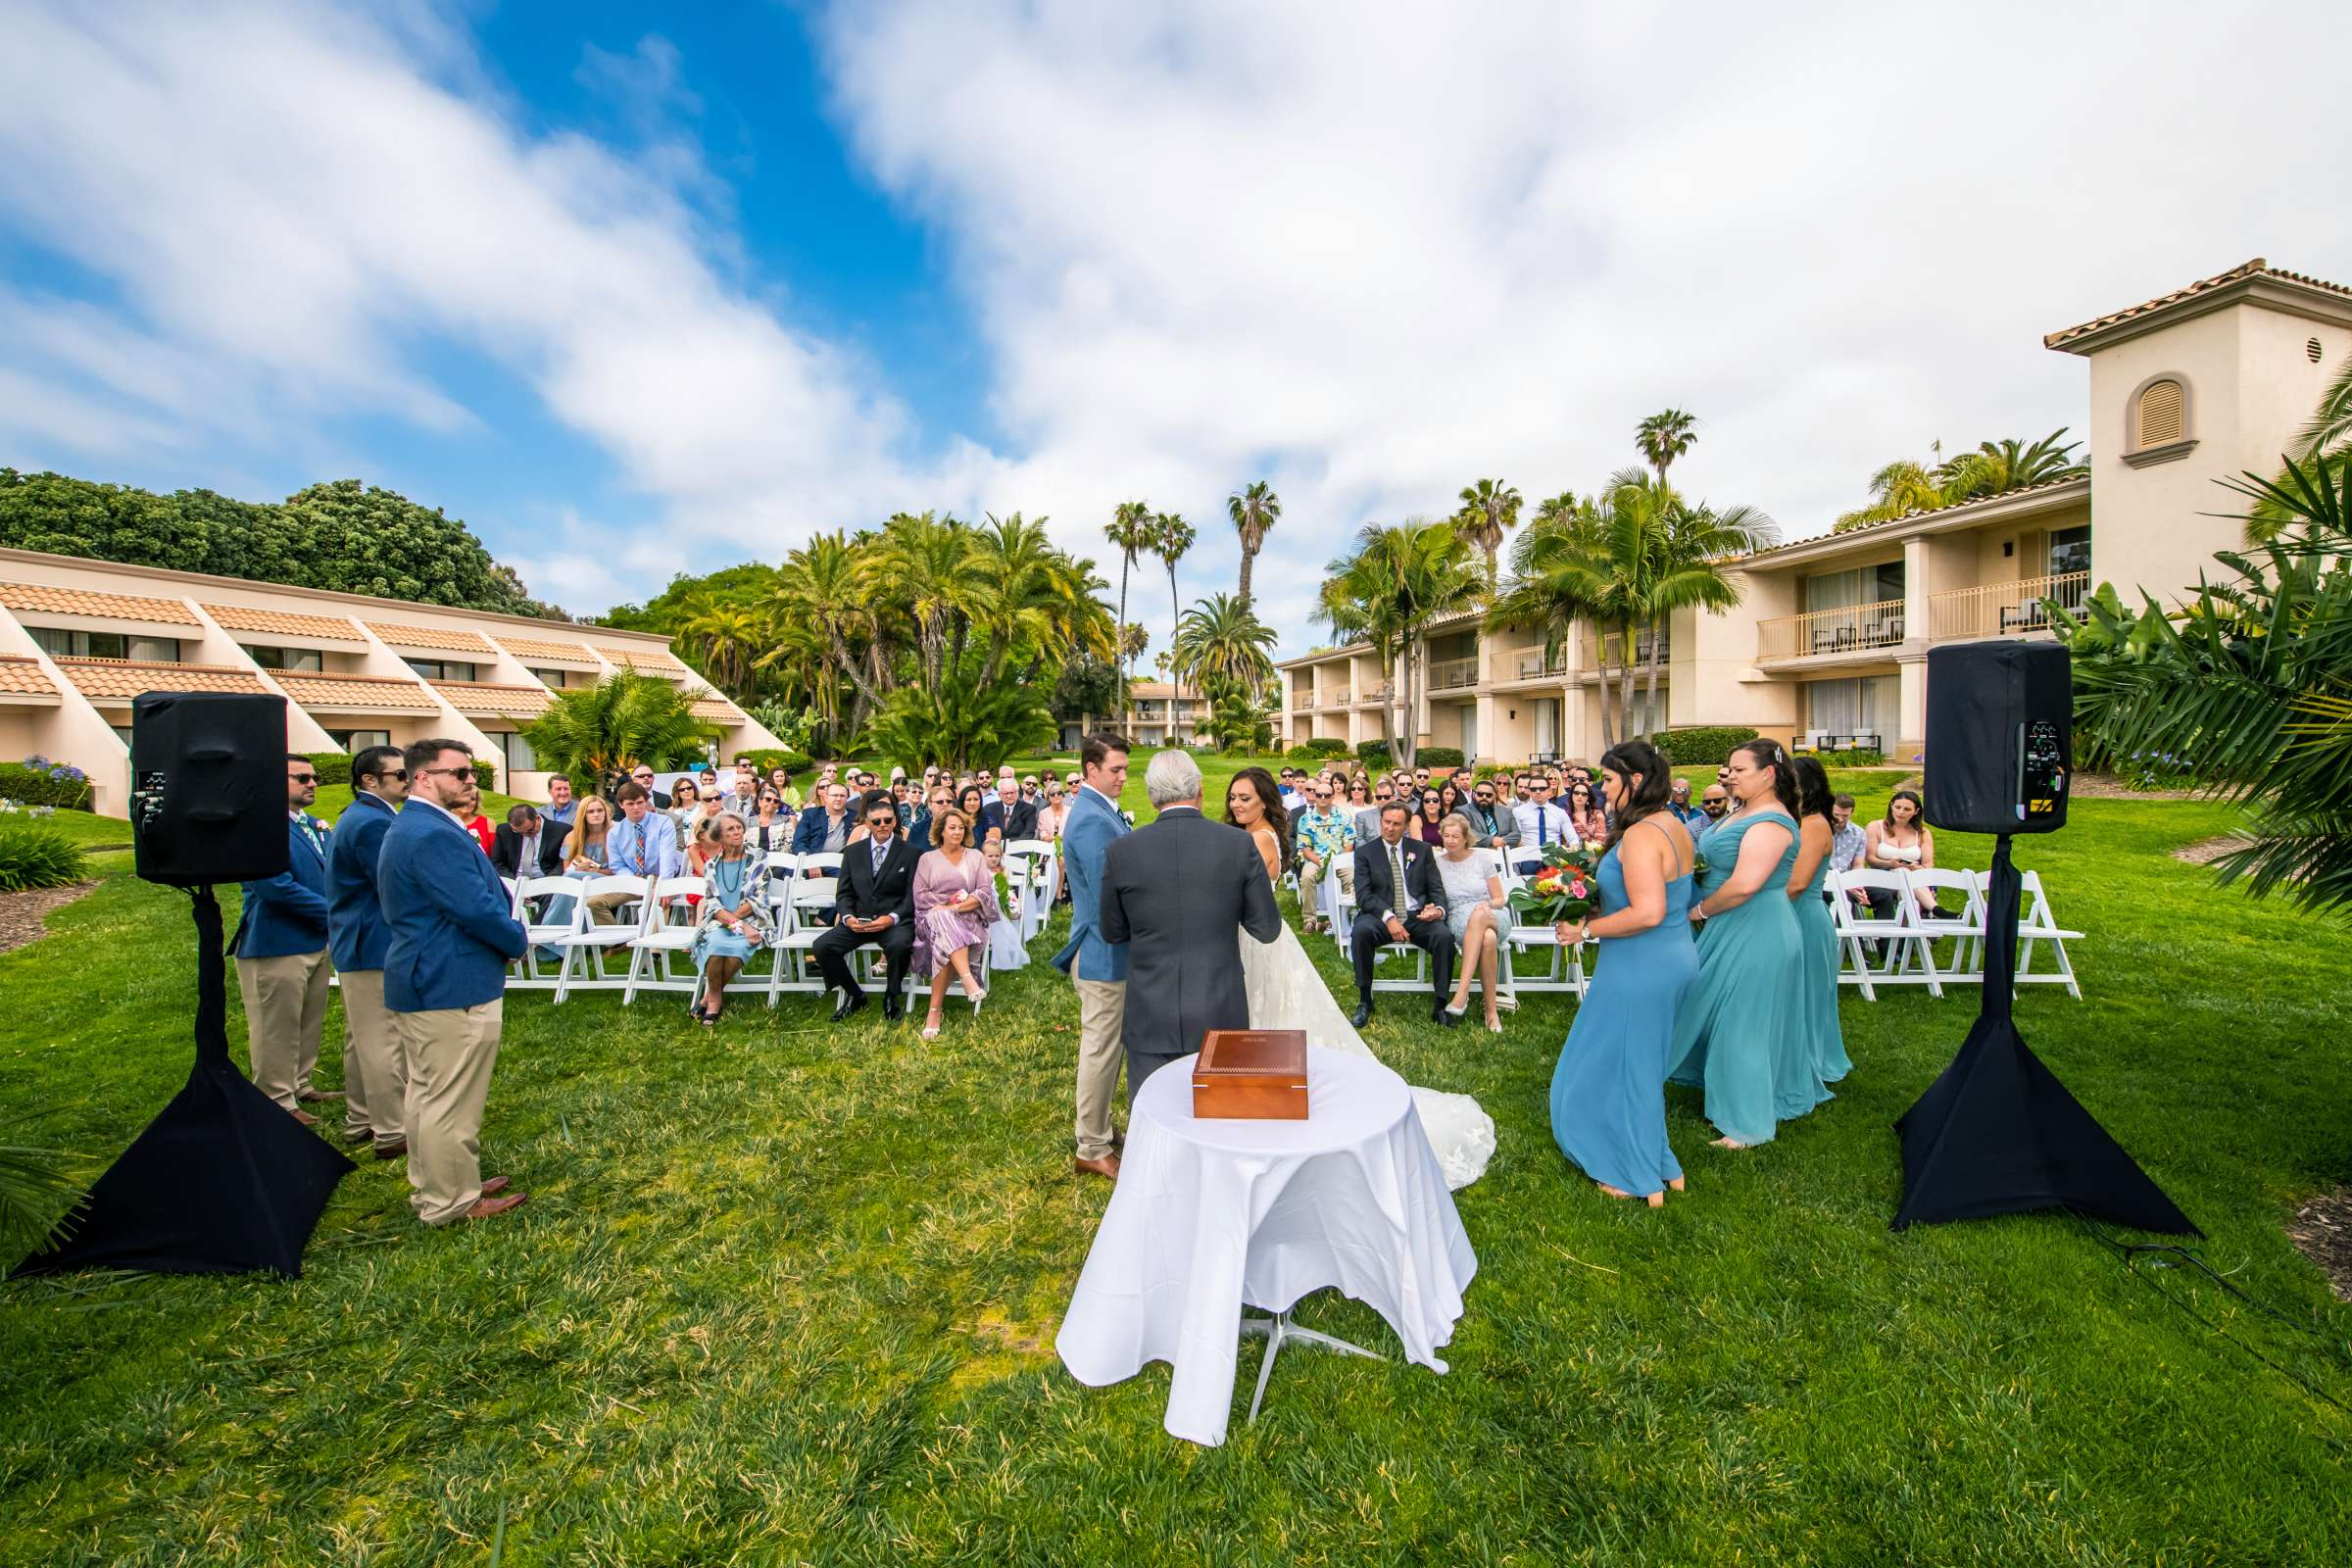 San Diego Mission Bay Resort Wedding coordinated by Cafe Au Love, Lauren and Adam Wedding Photo #74 by True Photography